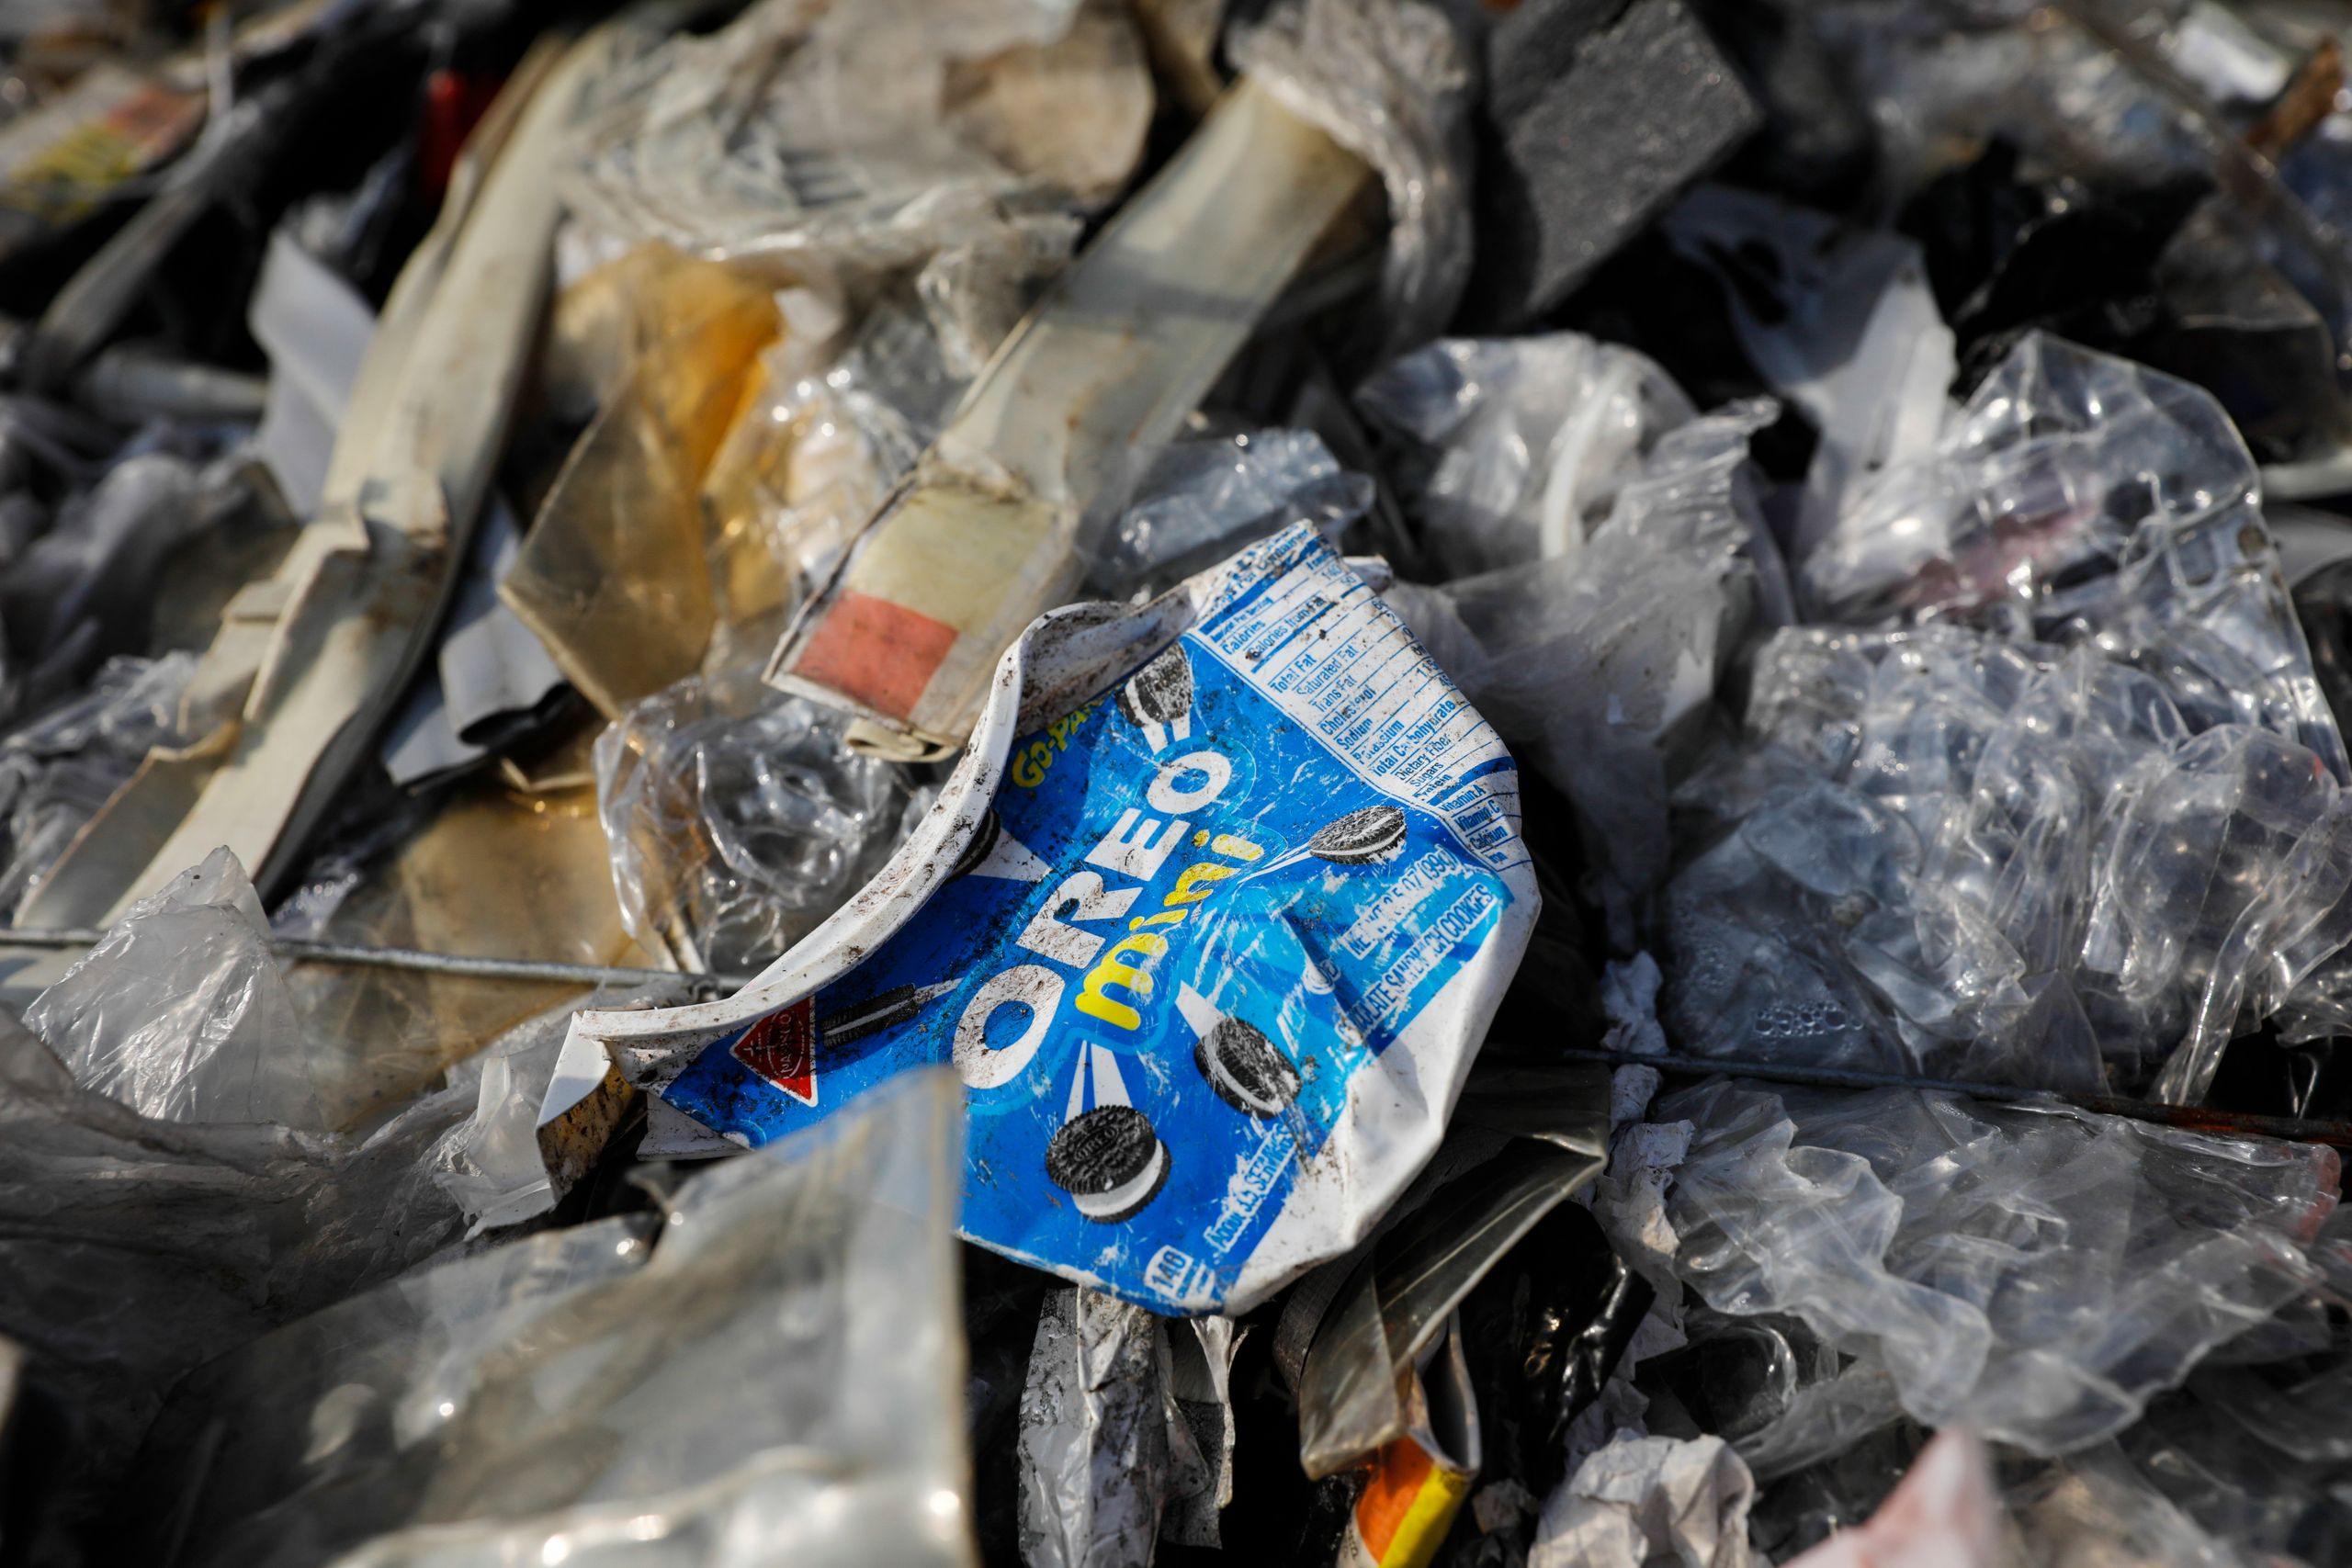 Postconsumer plastic from the U.S. at a dumpsite in Ipoh, Jan. 30. The bulk of discarded plastics, including items put i